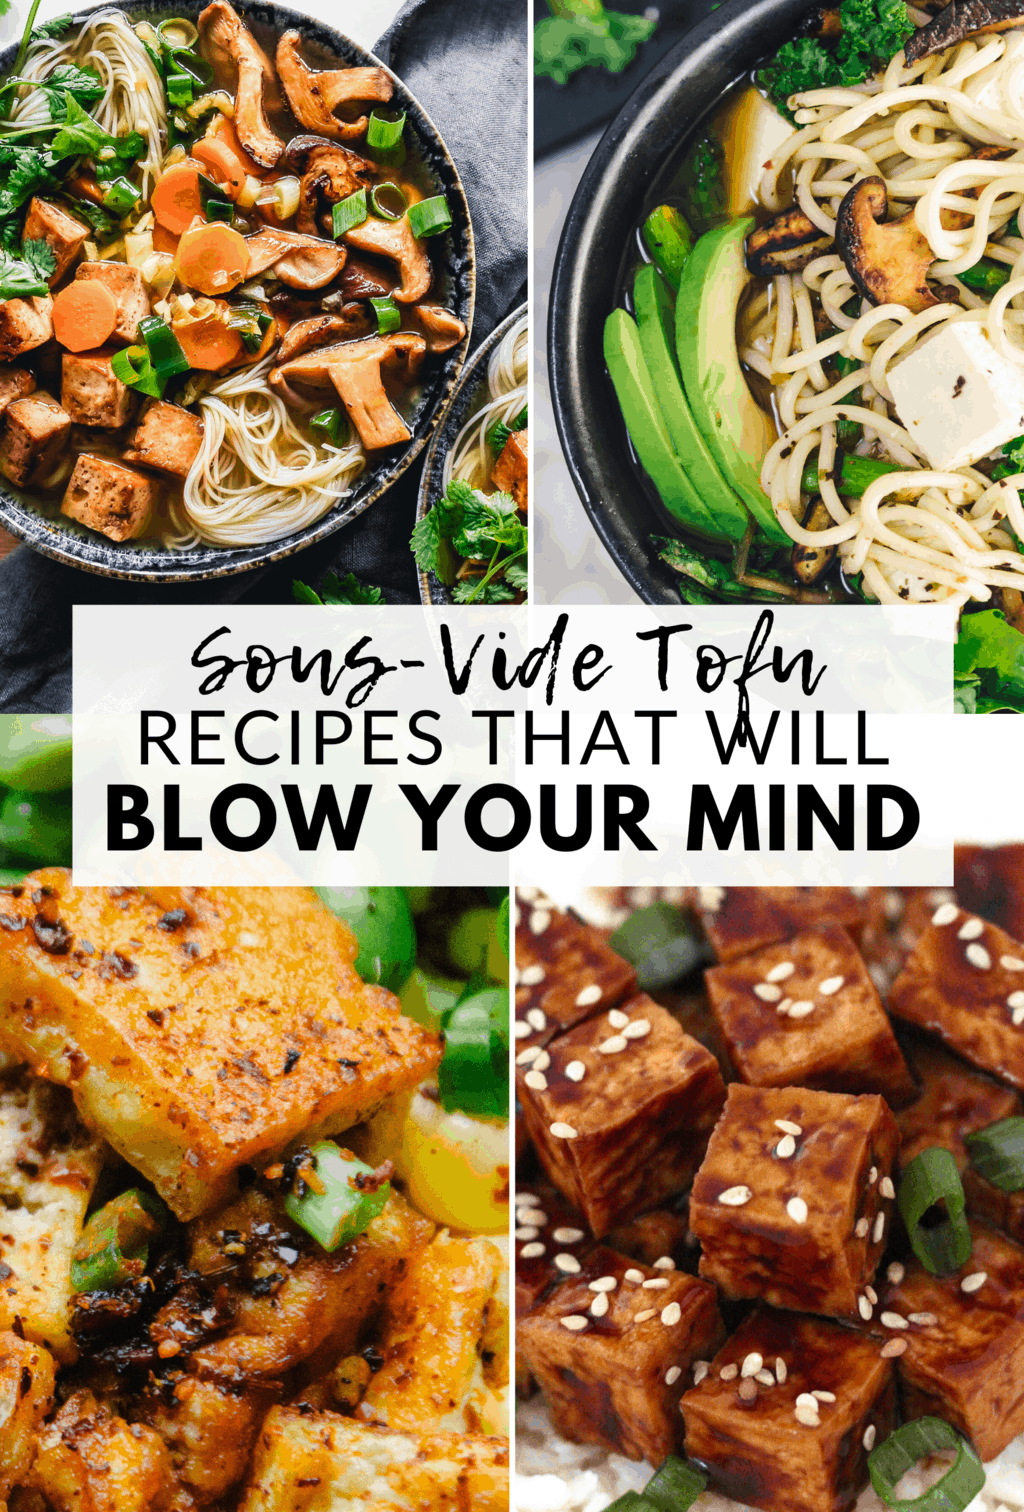 Here are 3 incredible sous-vide tofu recipes that will blow your mind! Sous-vide tofu is cooked for longer at a lower temperature resulting in BIG flavor, perfectly crispy tofu every time. All recipes are vegan and gluten-free, too!